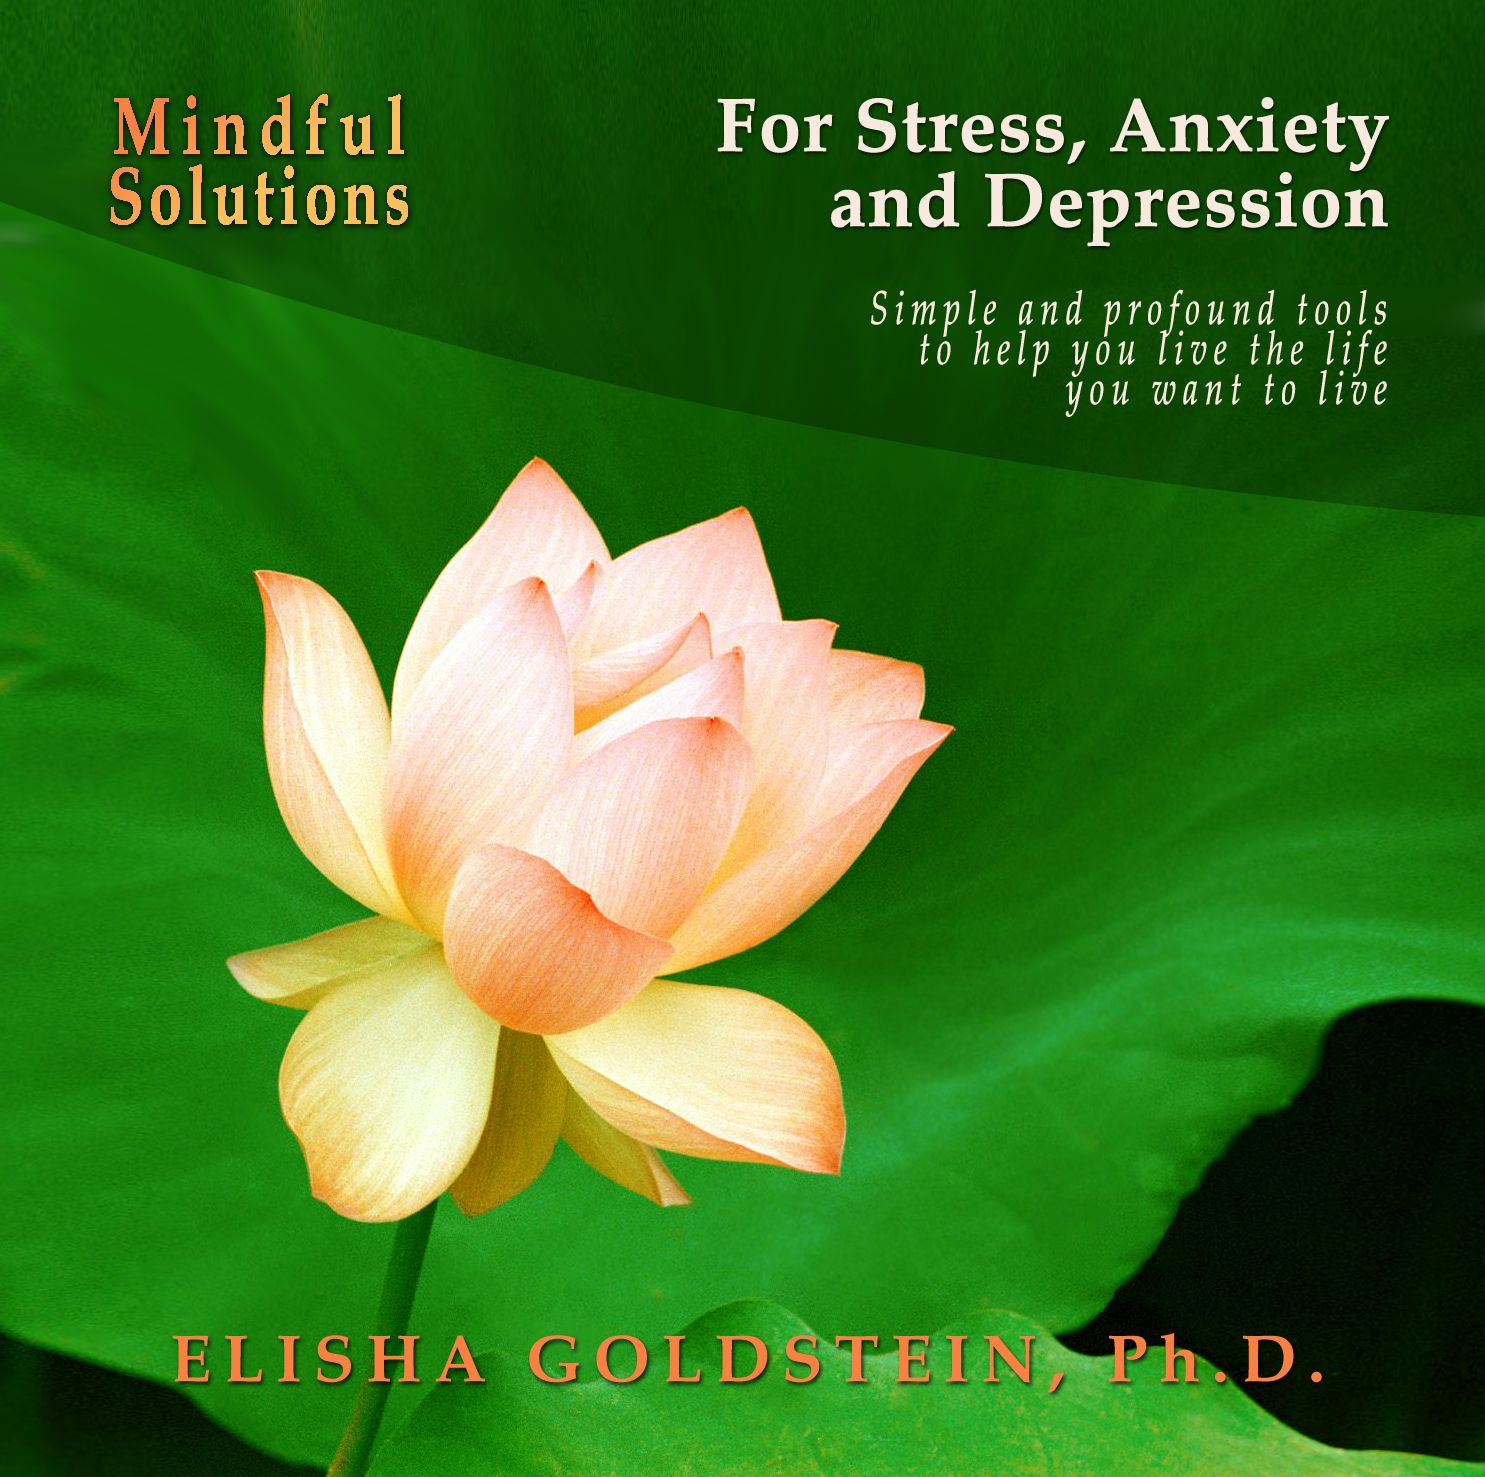 self help books relationship anxiety and depression